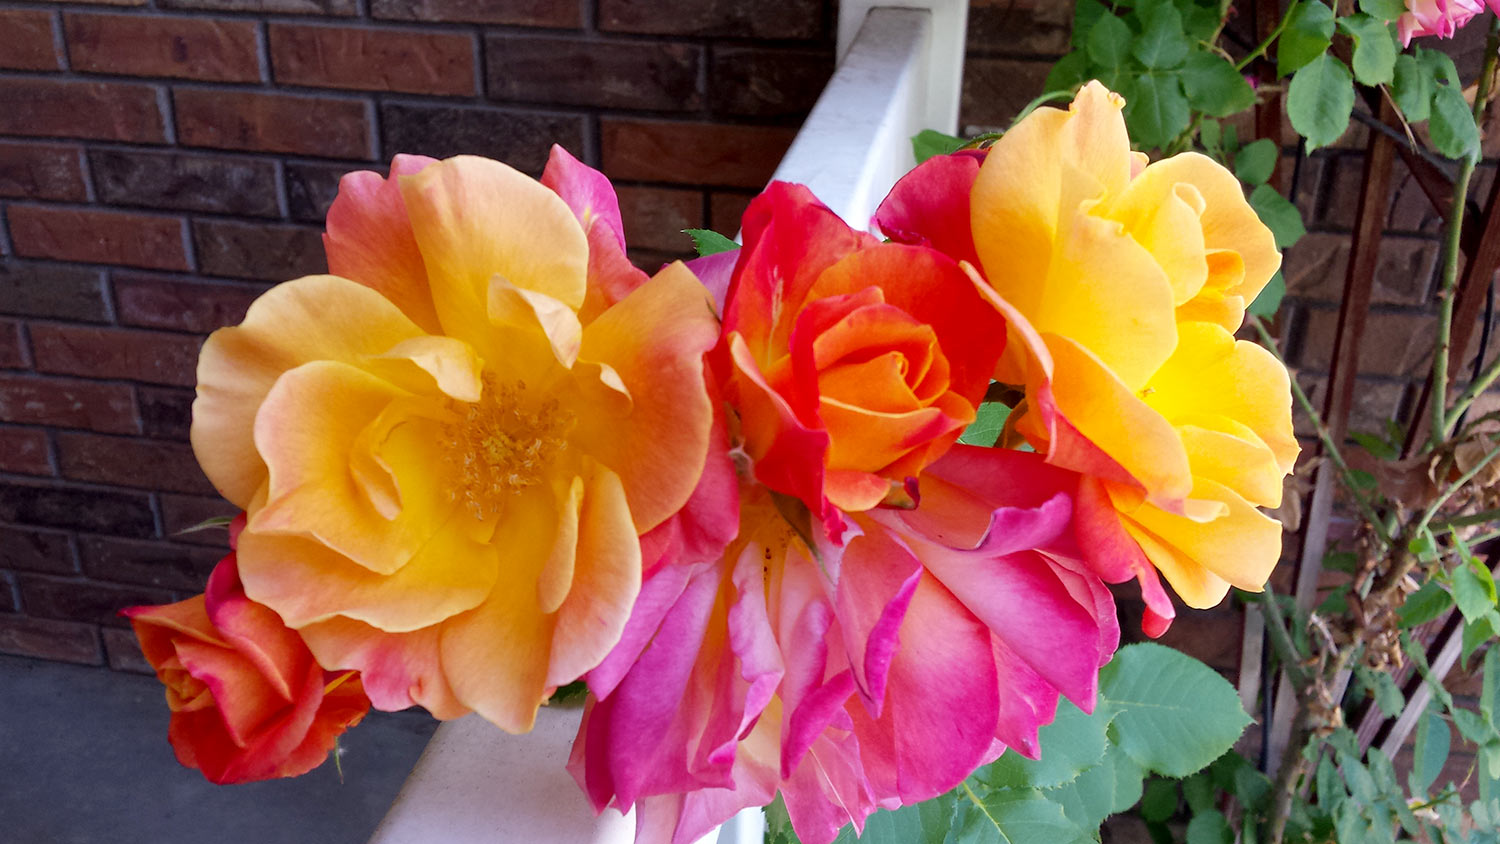 Life savers april photos lead to may photos it rhymes for Color changing roses